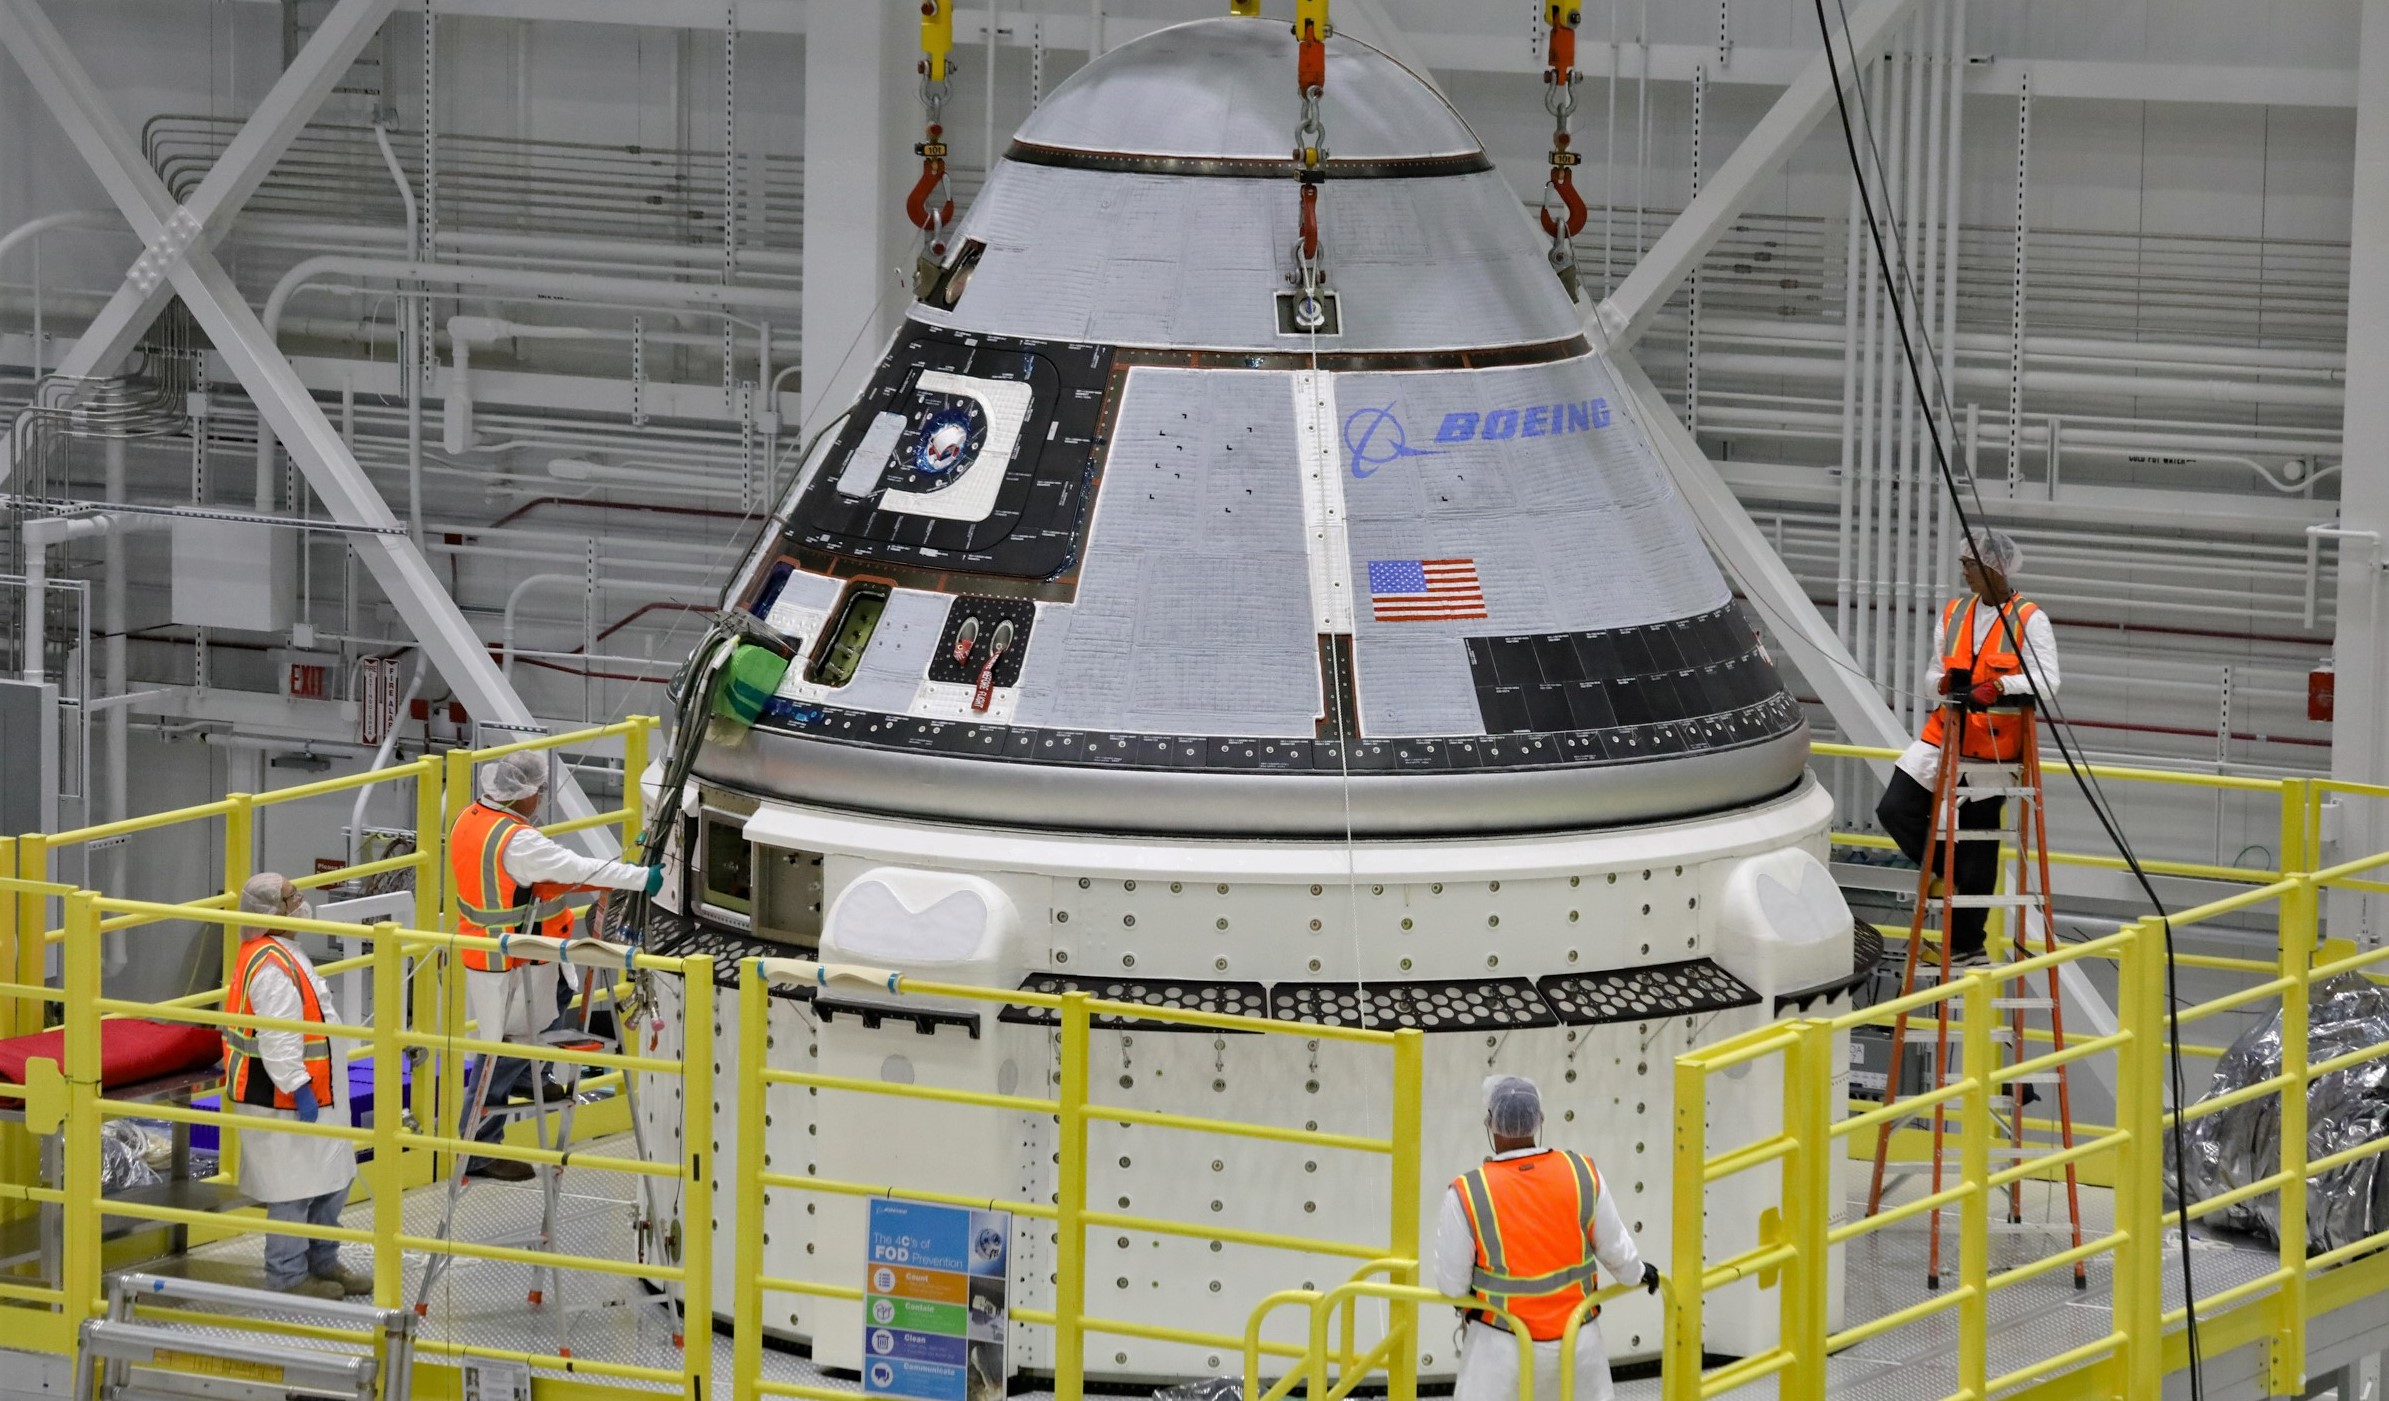 Boeing Starliner Rollout and Rendering for OFT Launch